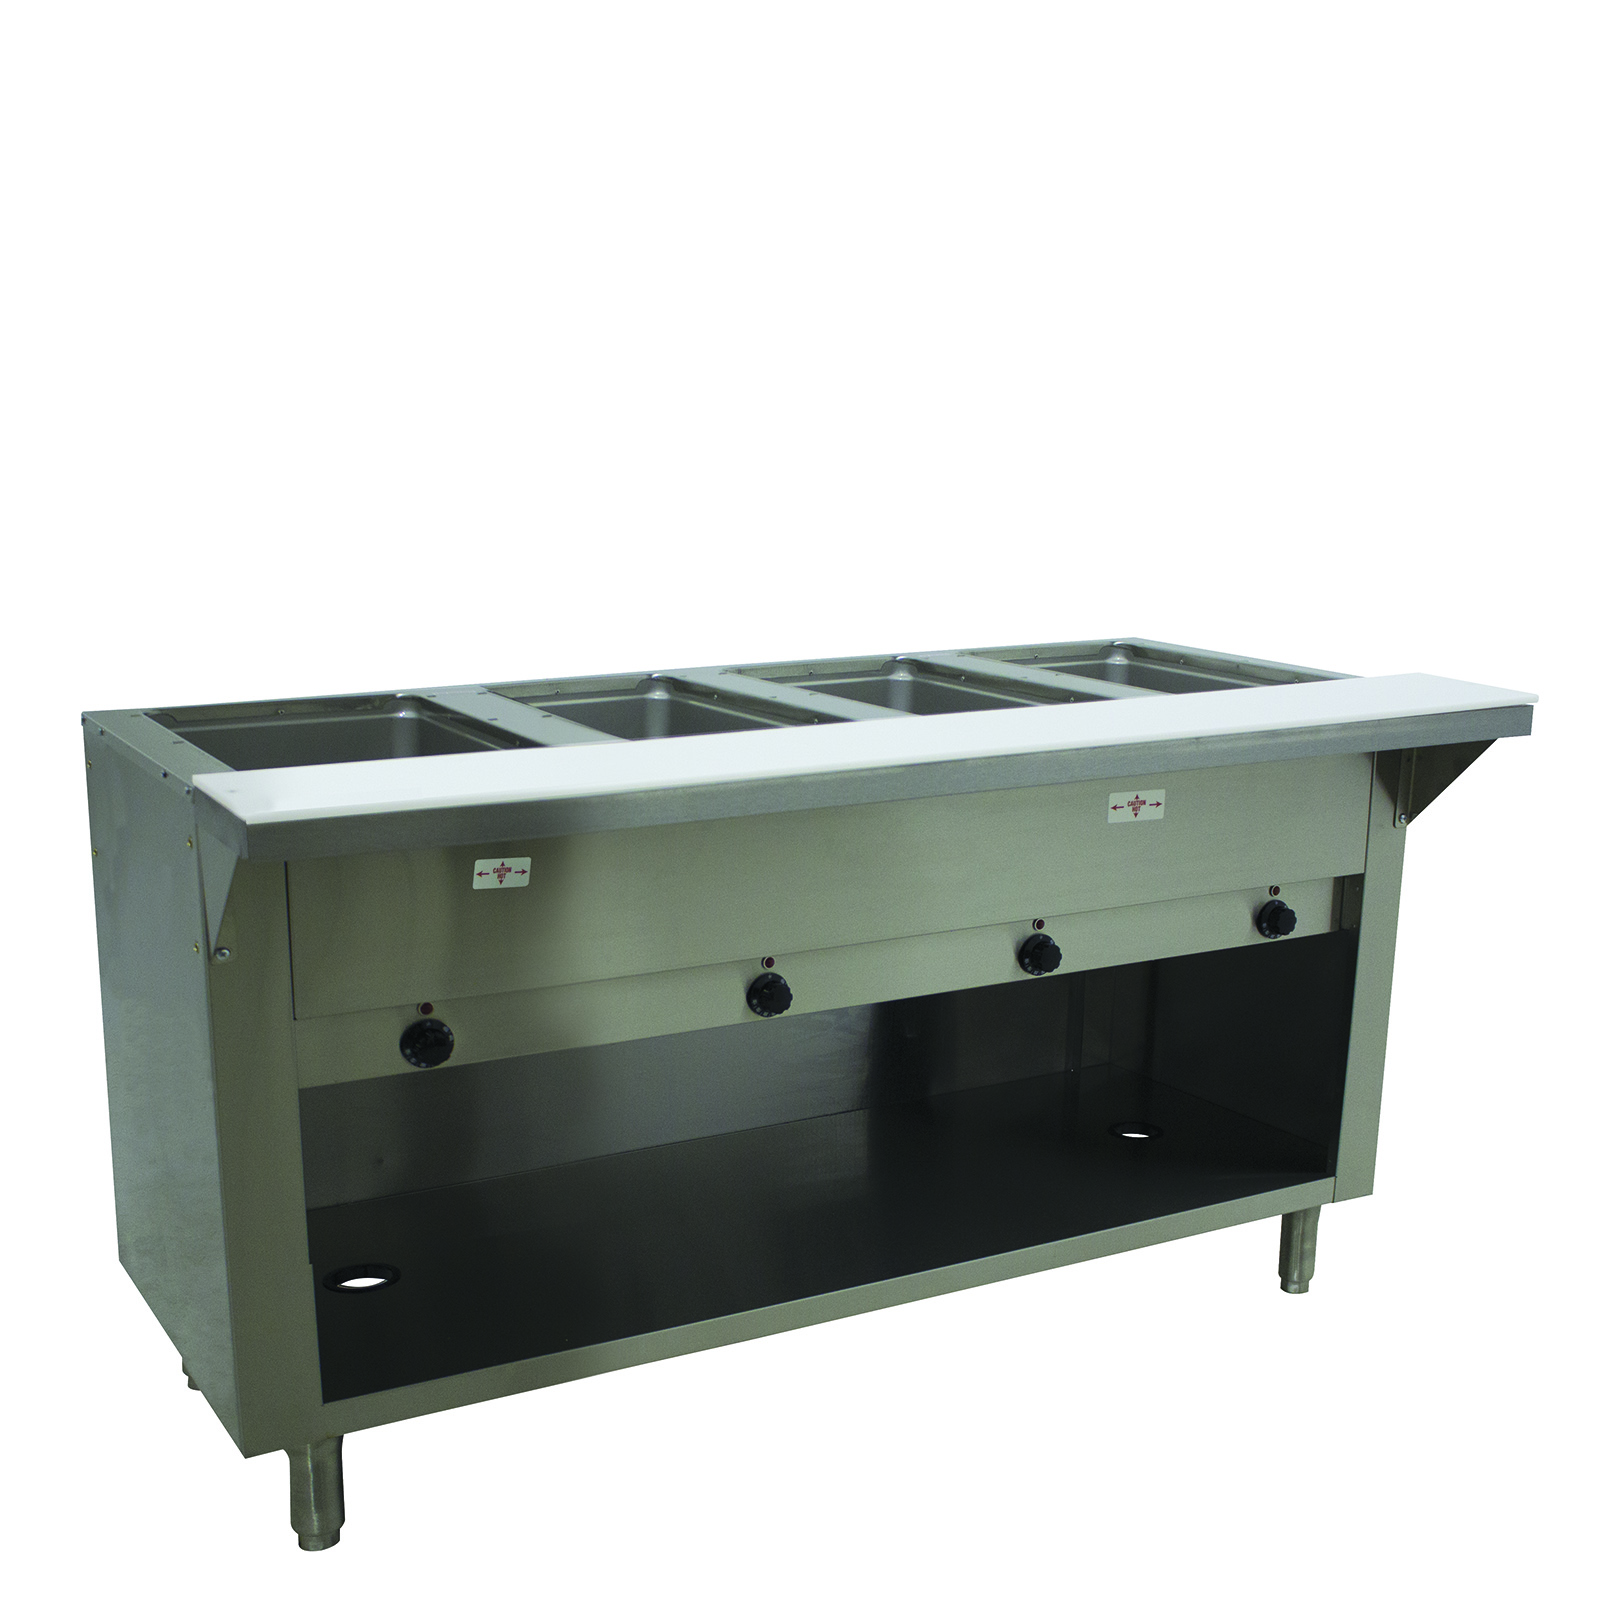 Advance Tabco HF-4E-120-BS serving counter, hot food, electric